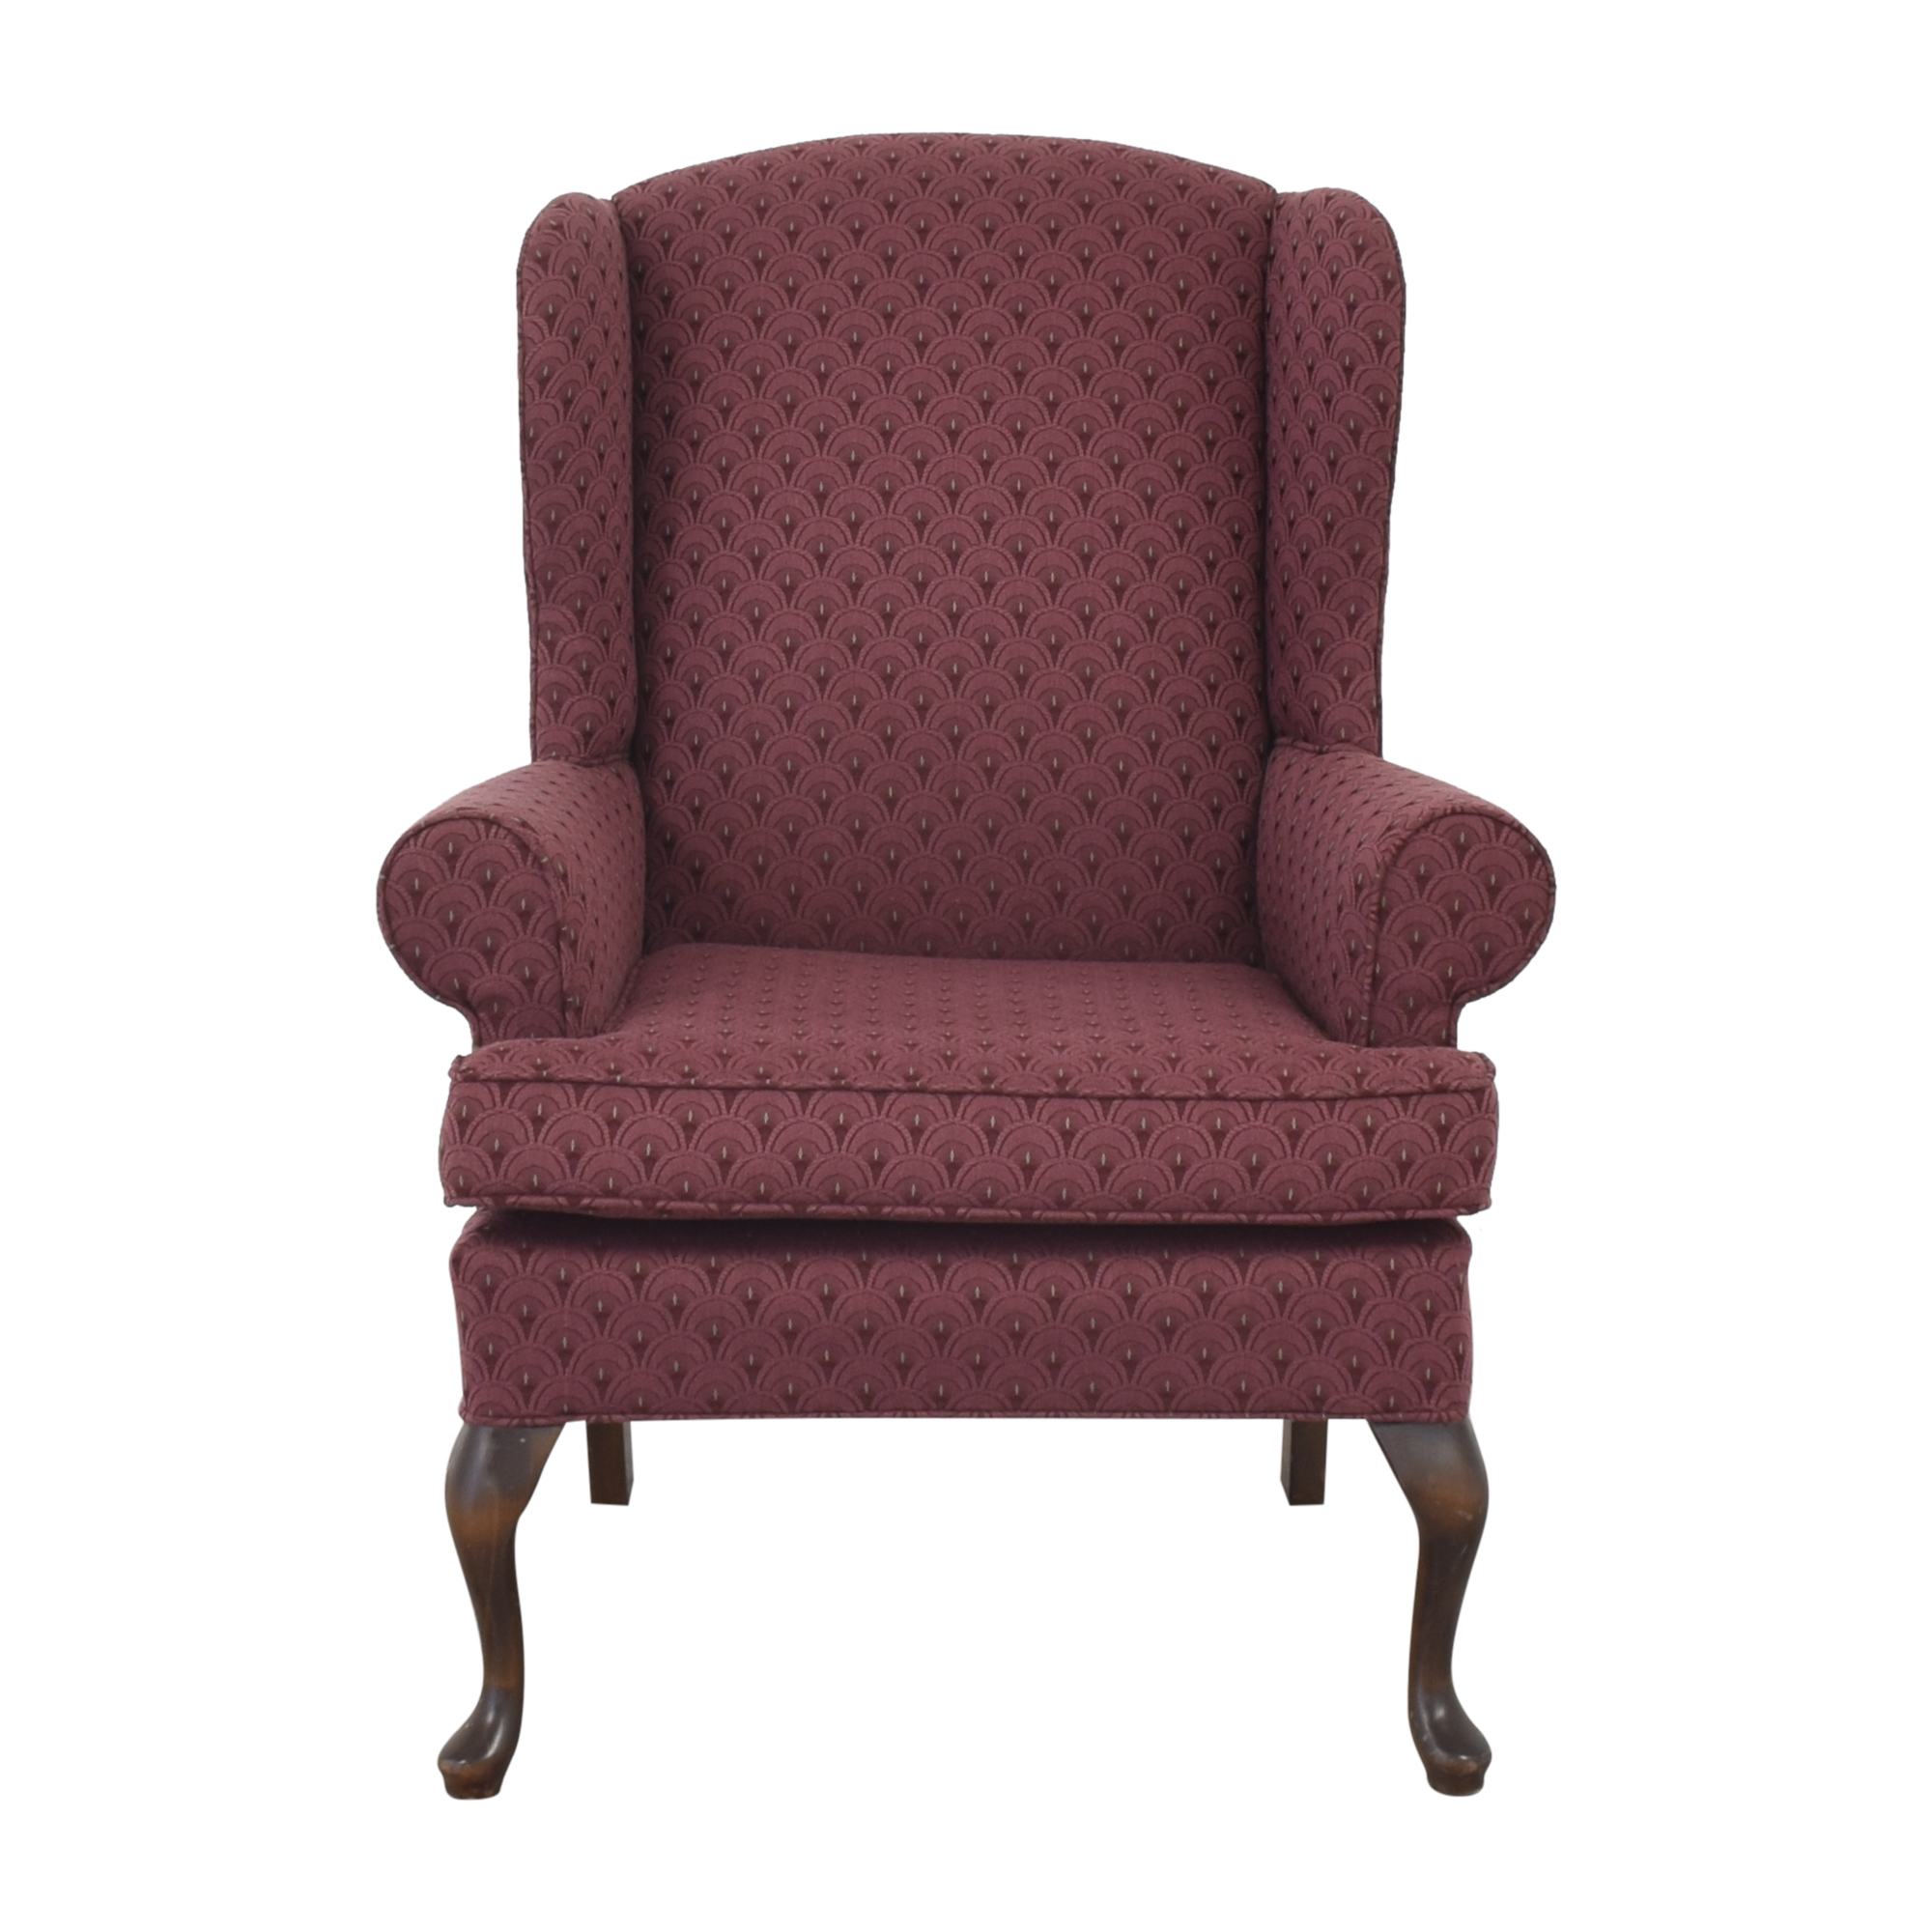 Pembrook Chair Pembrook Wing Accent Chair used